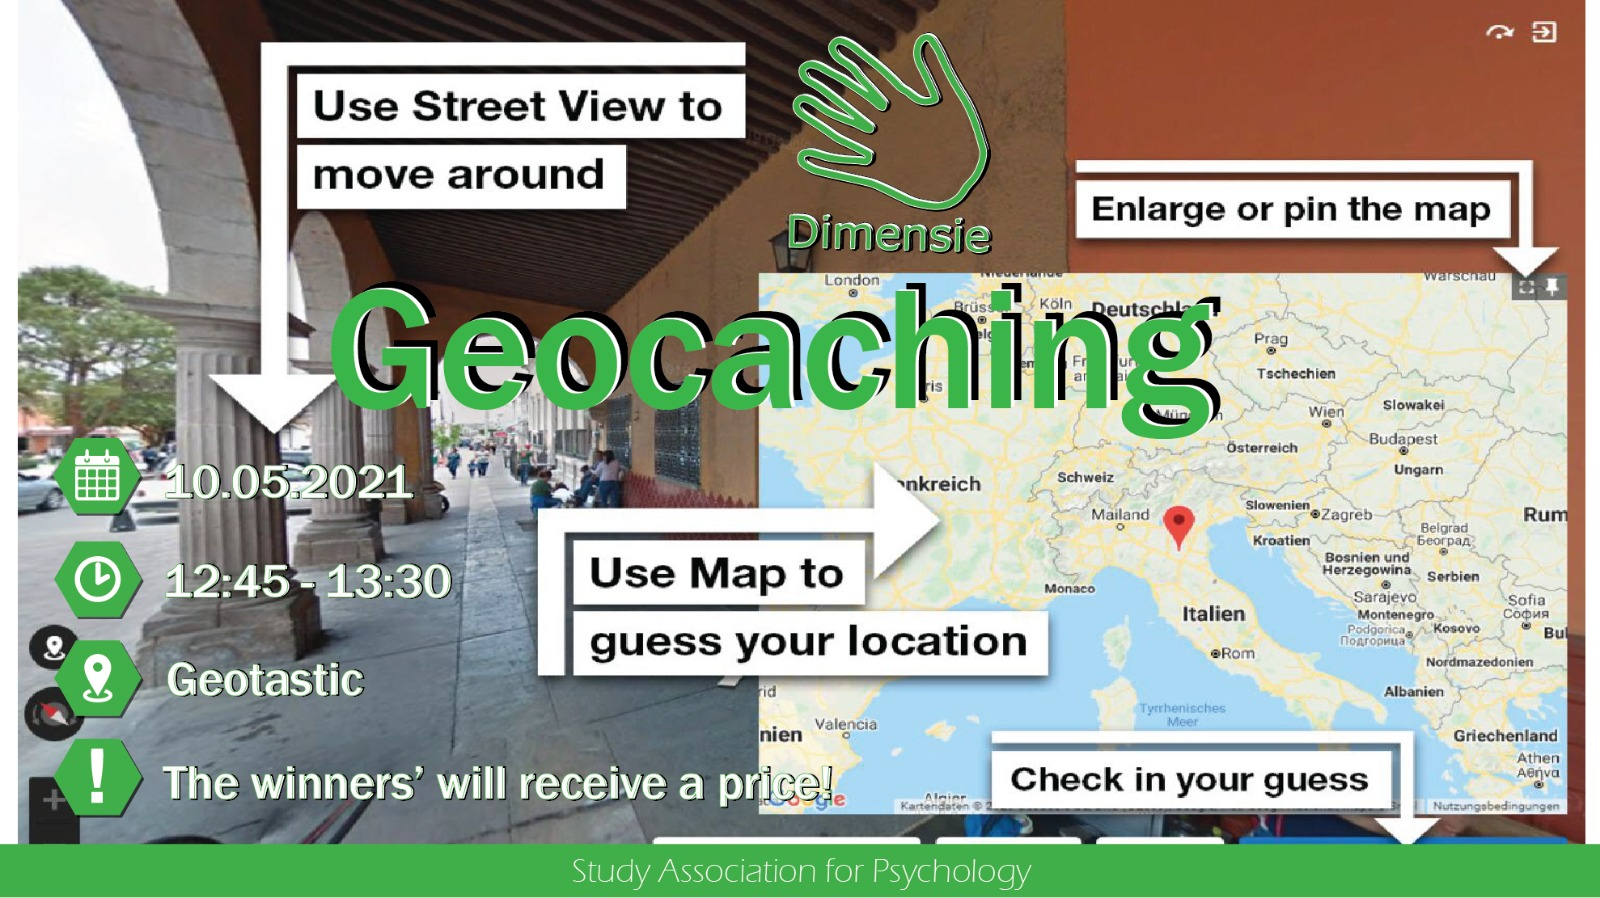 Geotastic Event